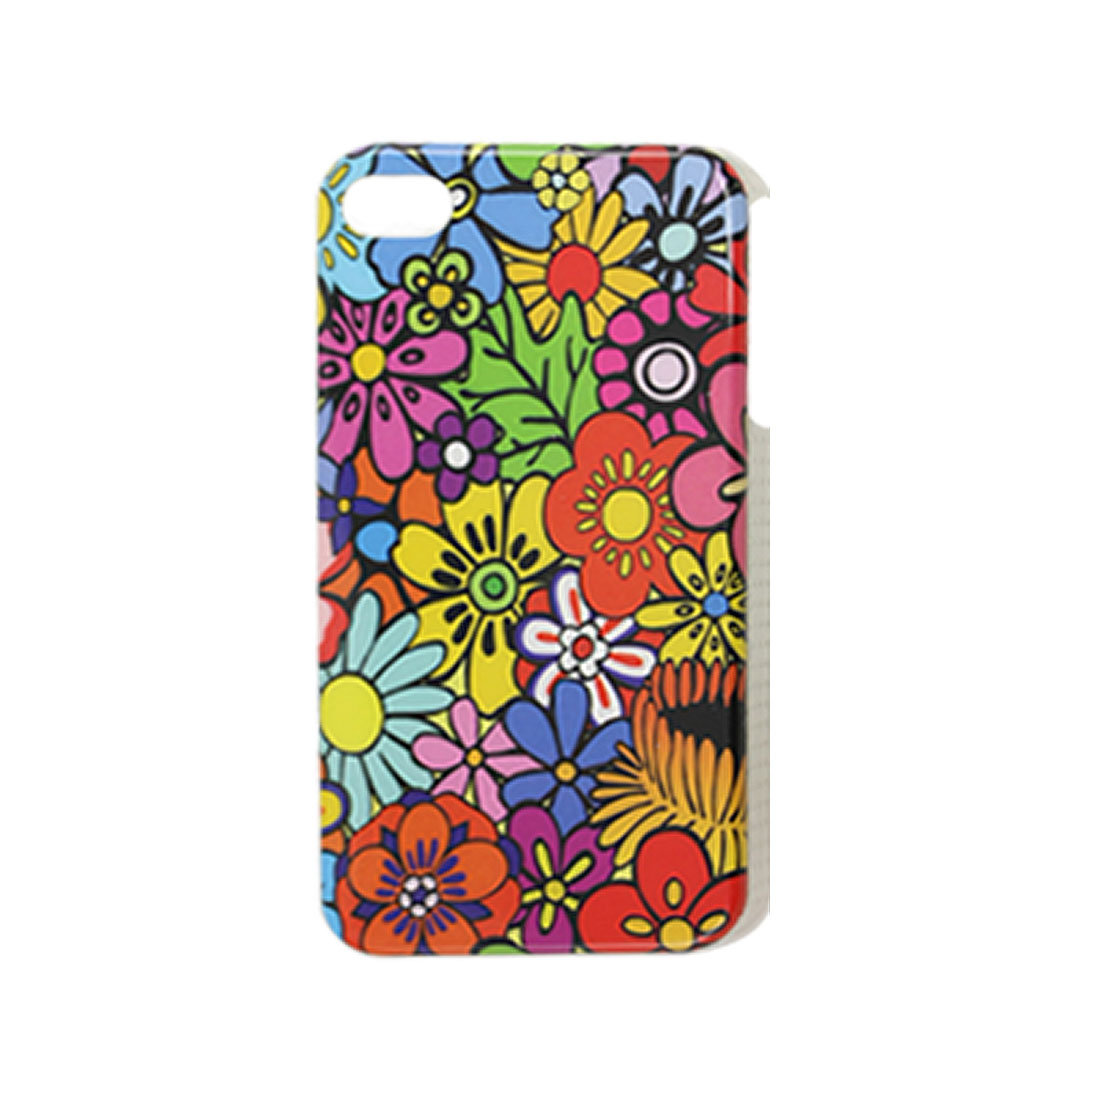 Colorful Flower Hard Plastic IMD Back Case for iPhone 4 4G 4S